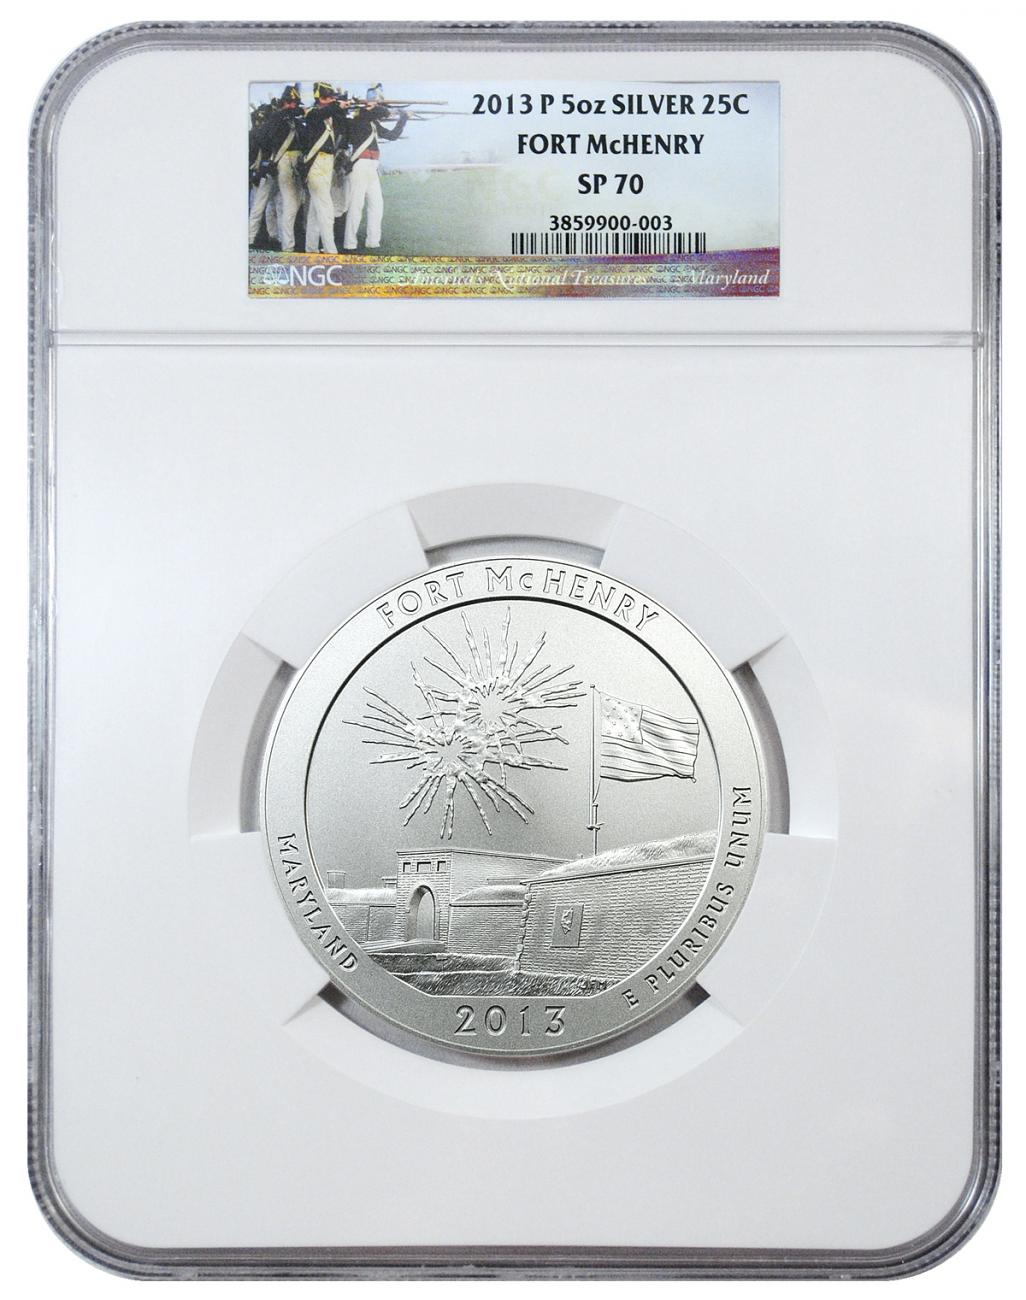 2013-P Fort McHenry 5 oz. Silver America the Beautiful Specimen Coin NGC SP70